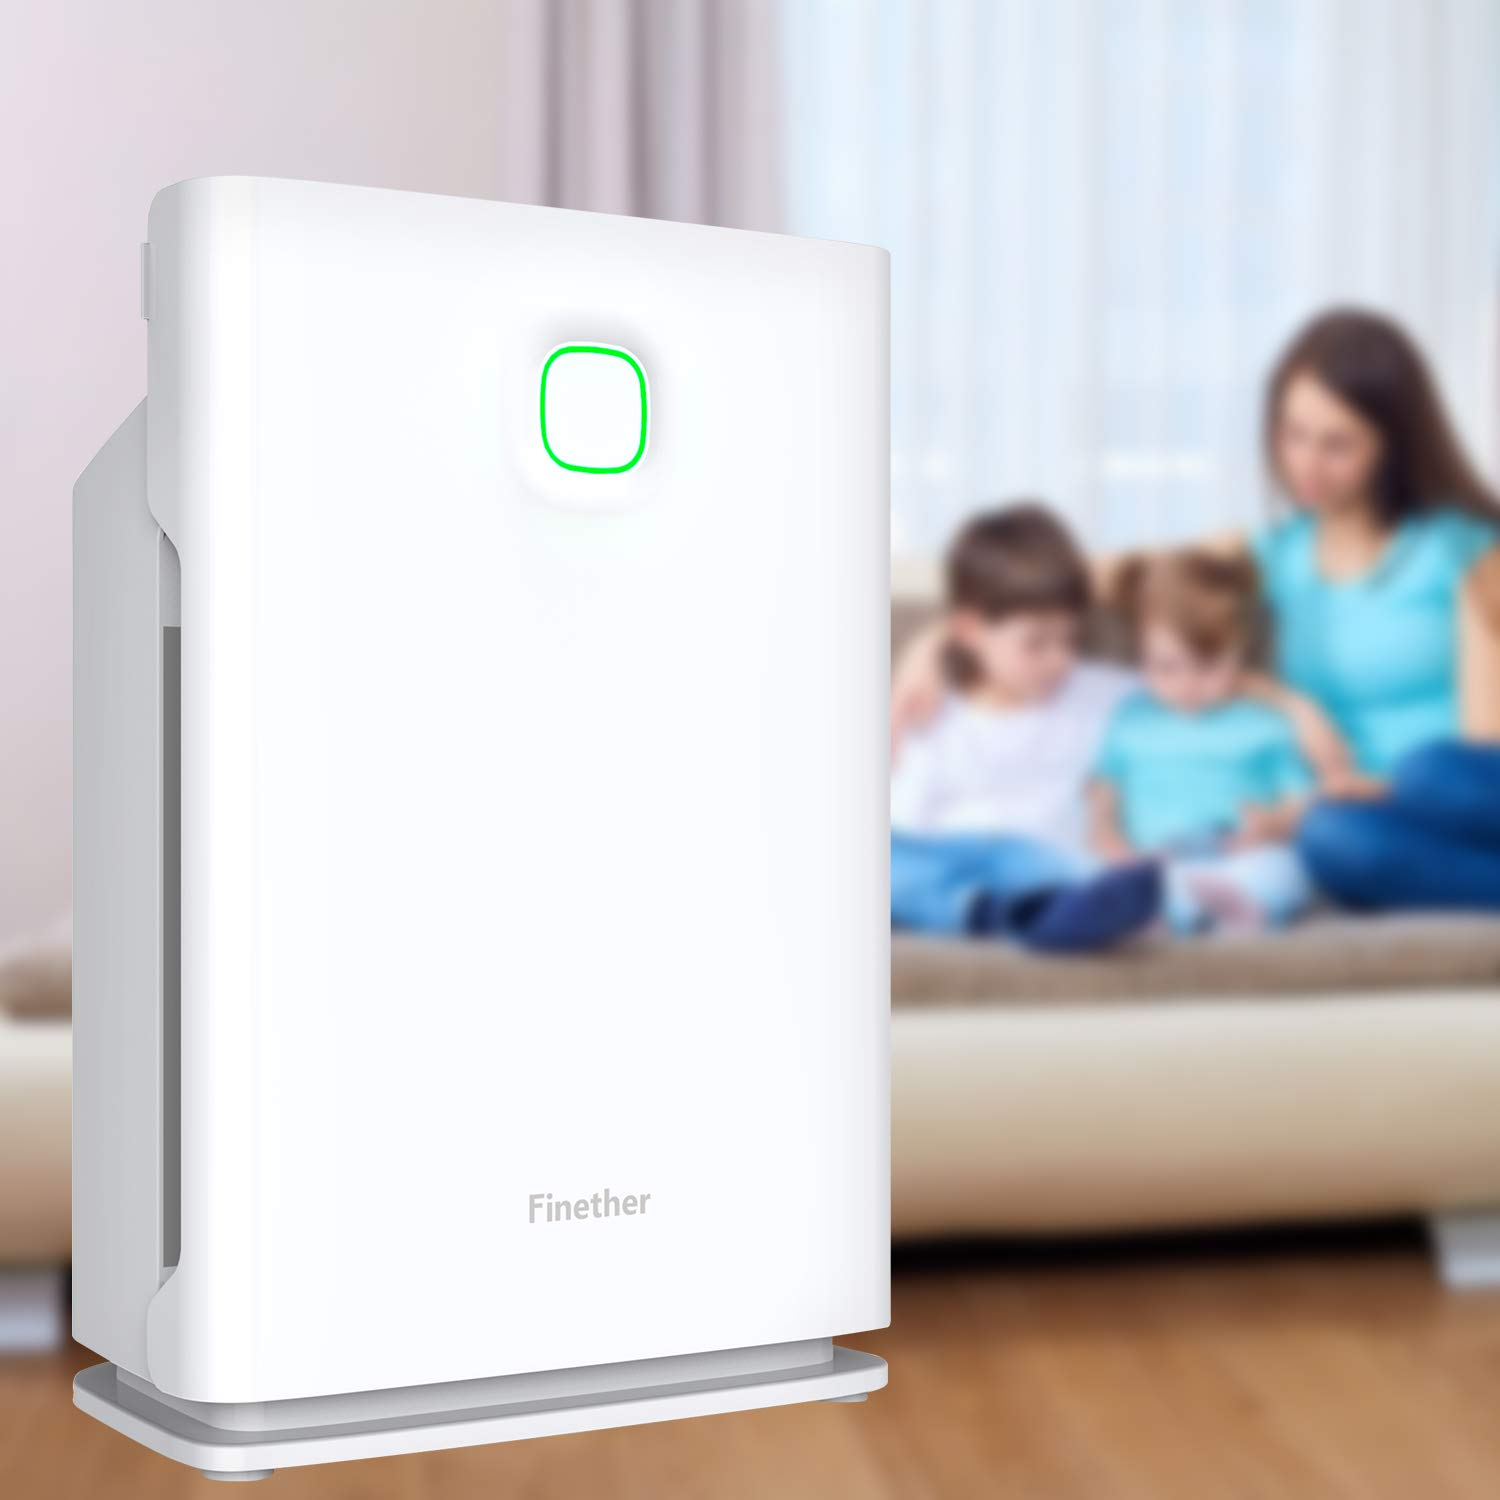 Finether Home Air Purifier Large HEPA Air Purifier Air Cleaner Machine Air Filter Machine Air Purifying Machine HEPA Active Carbon Filter with 3 Stage Filtration│4 Timers│3 Fan Speeds│3 Modes (Sleep/Turbo/Auto)│Child Lock Filter Replace Indicator│for Larg